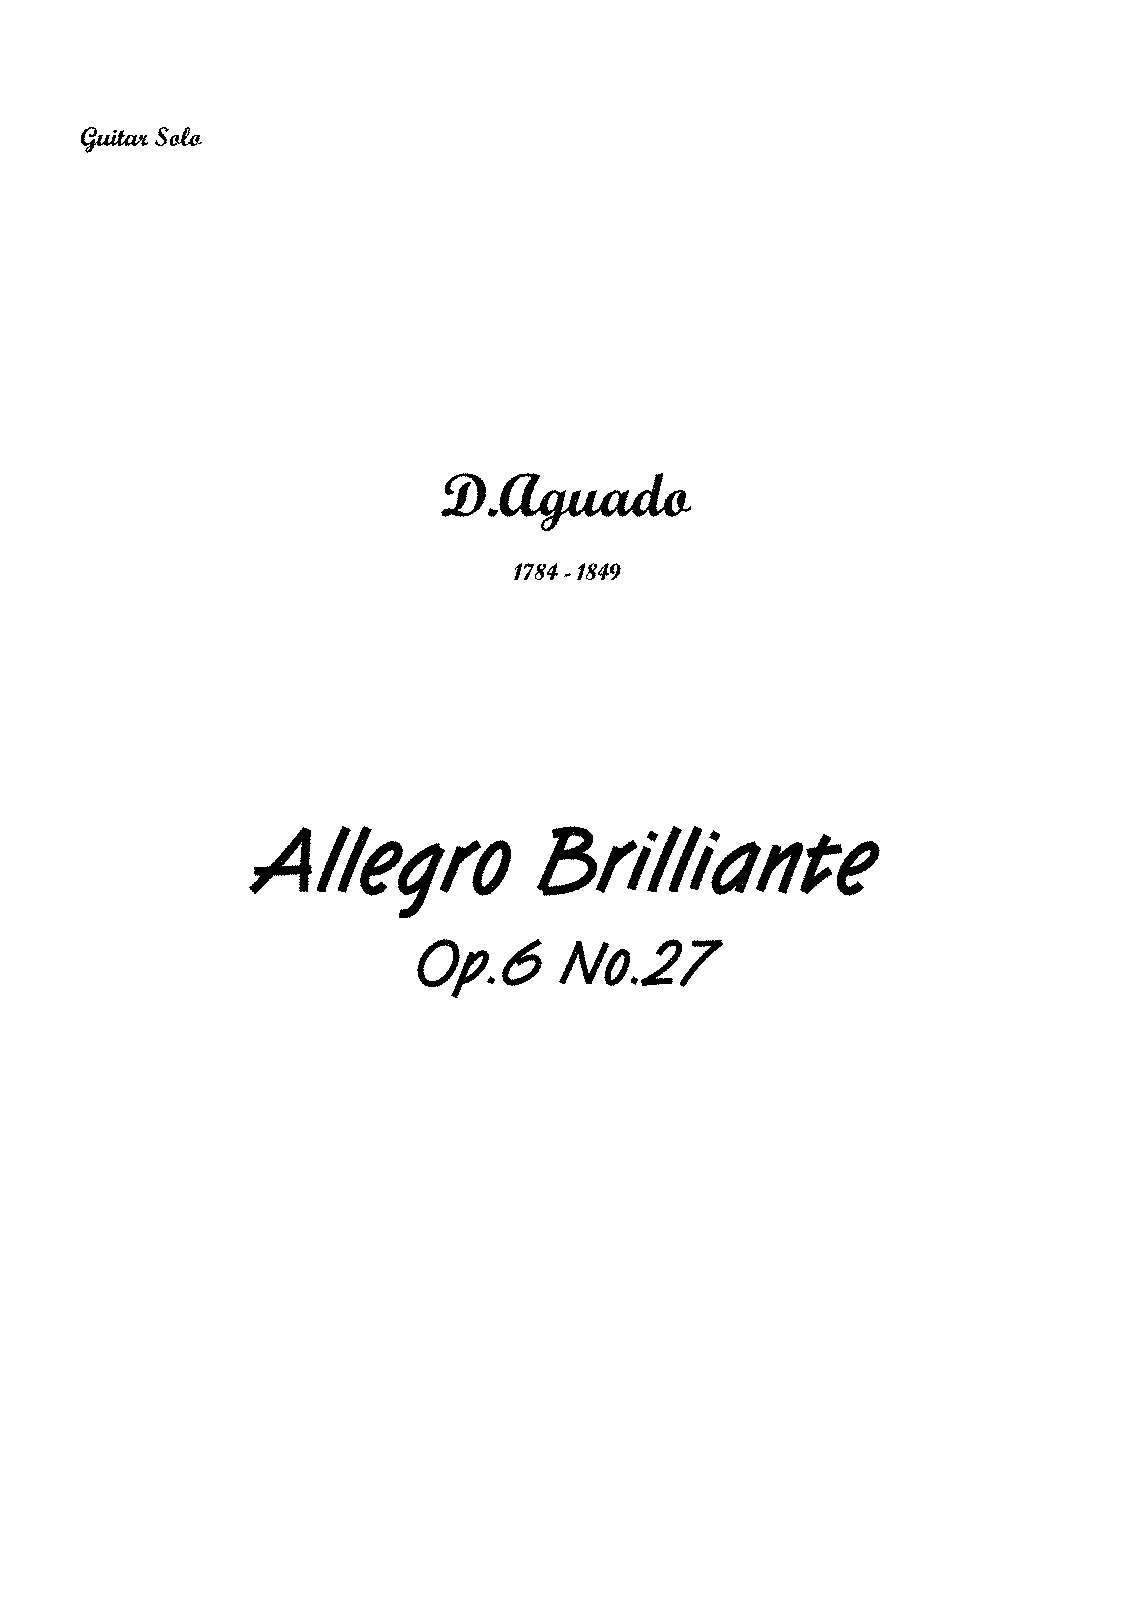 PMLP81902-aguado allegro brilliante Op.6 No 27.pdf